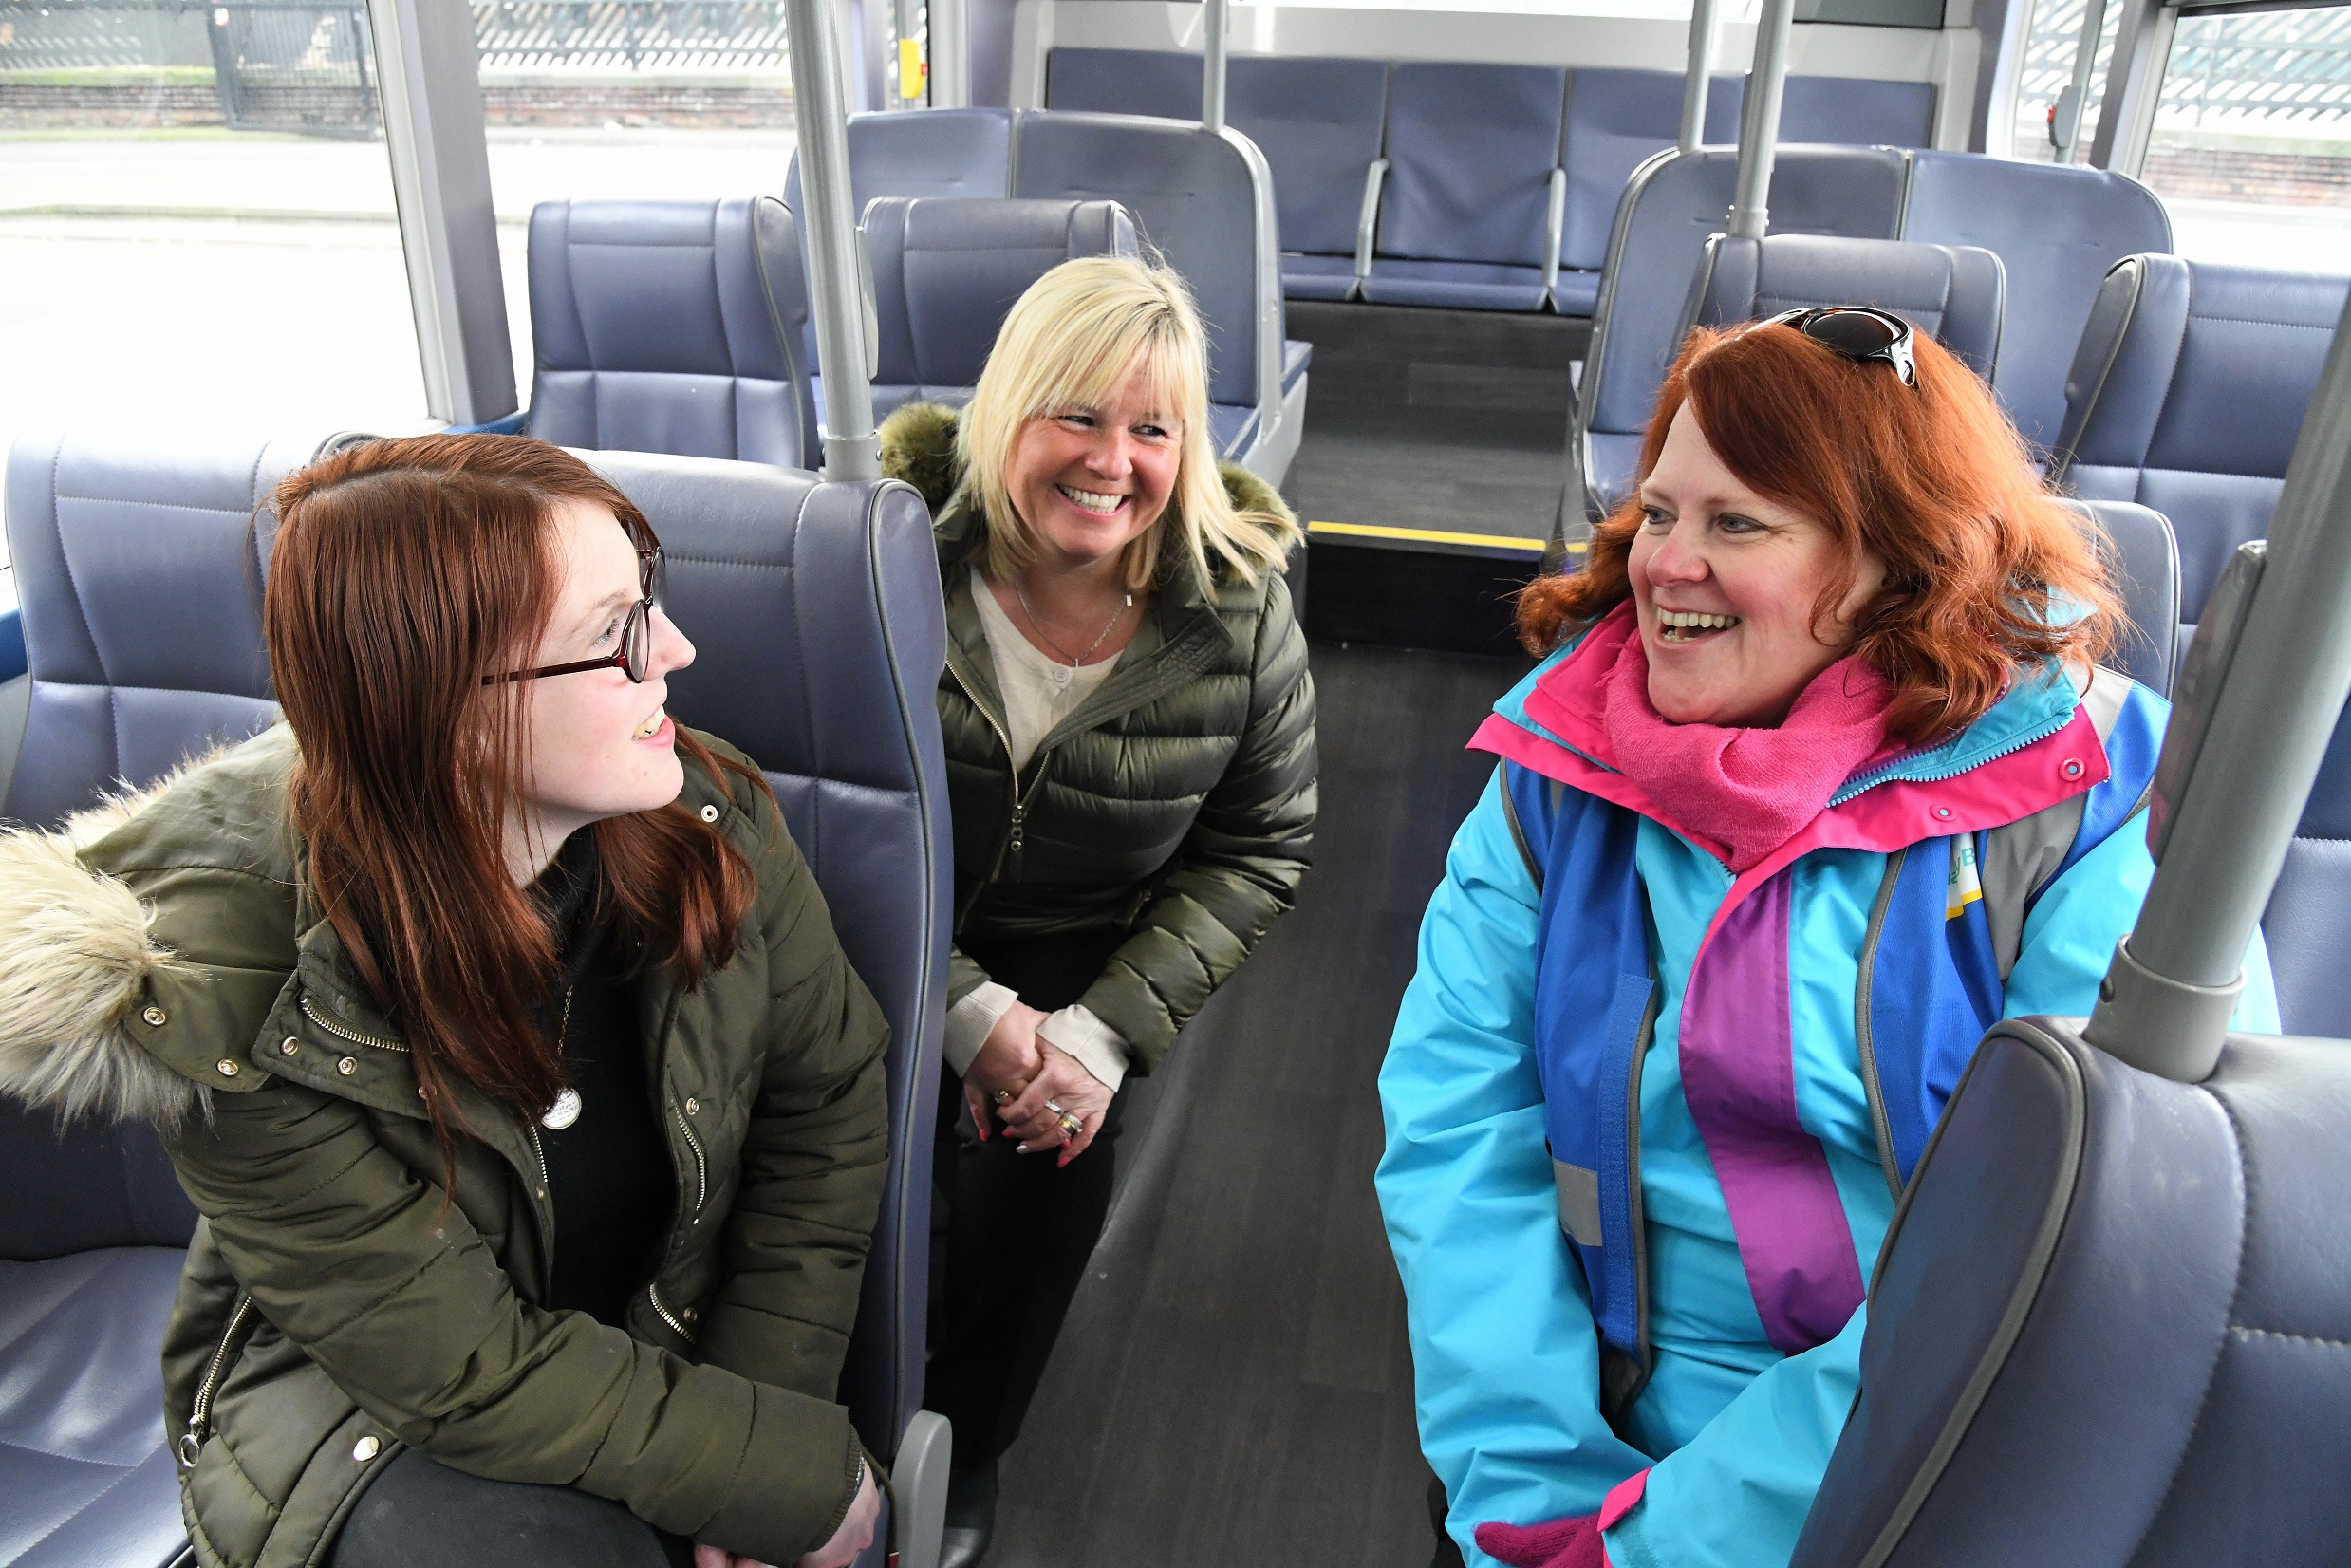 A group of people chat on a bus